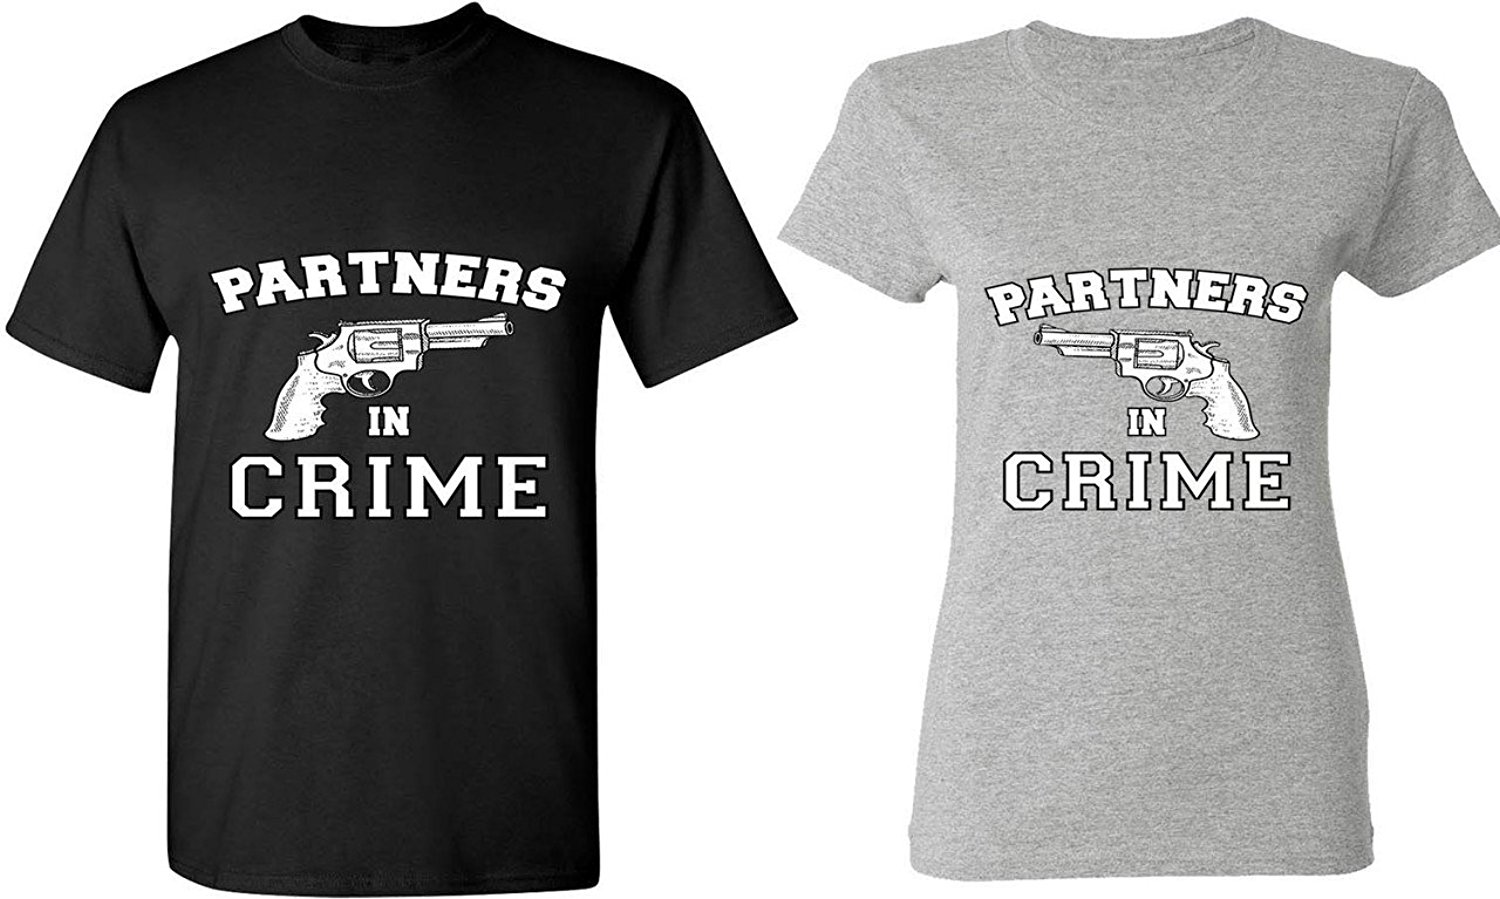 Couple t shirt design white - Gildan Partners In Crime Matching Couple Shirts His And Her T Shirts Tees